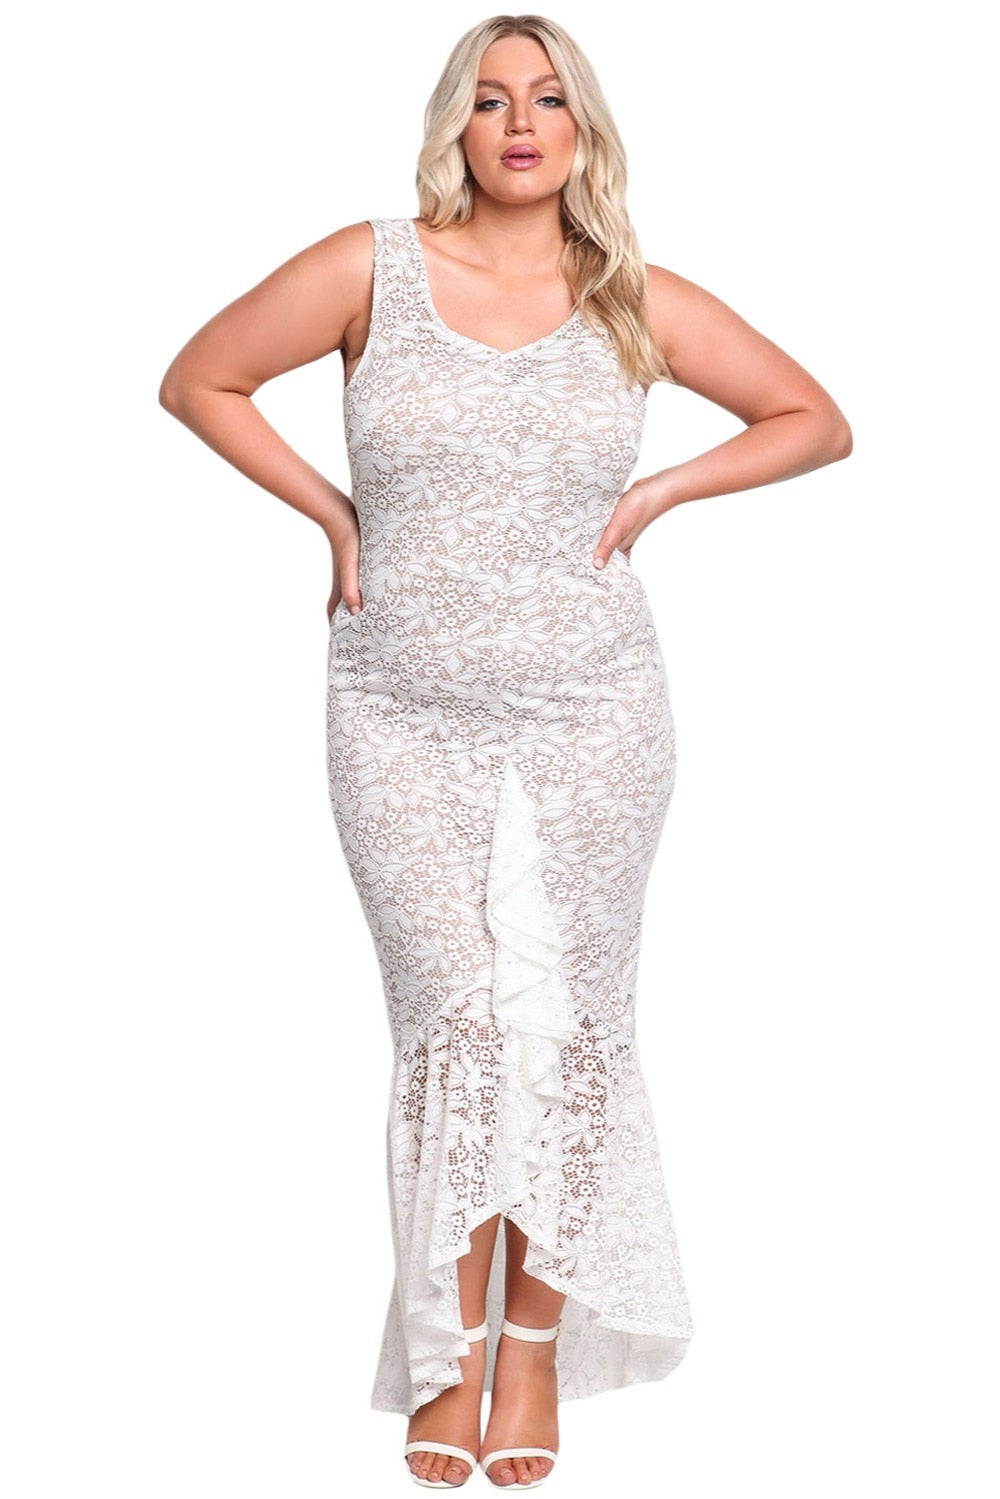 Josephine Plunge Mermaid Elegant Plus Size Party Dress Woven Trends